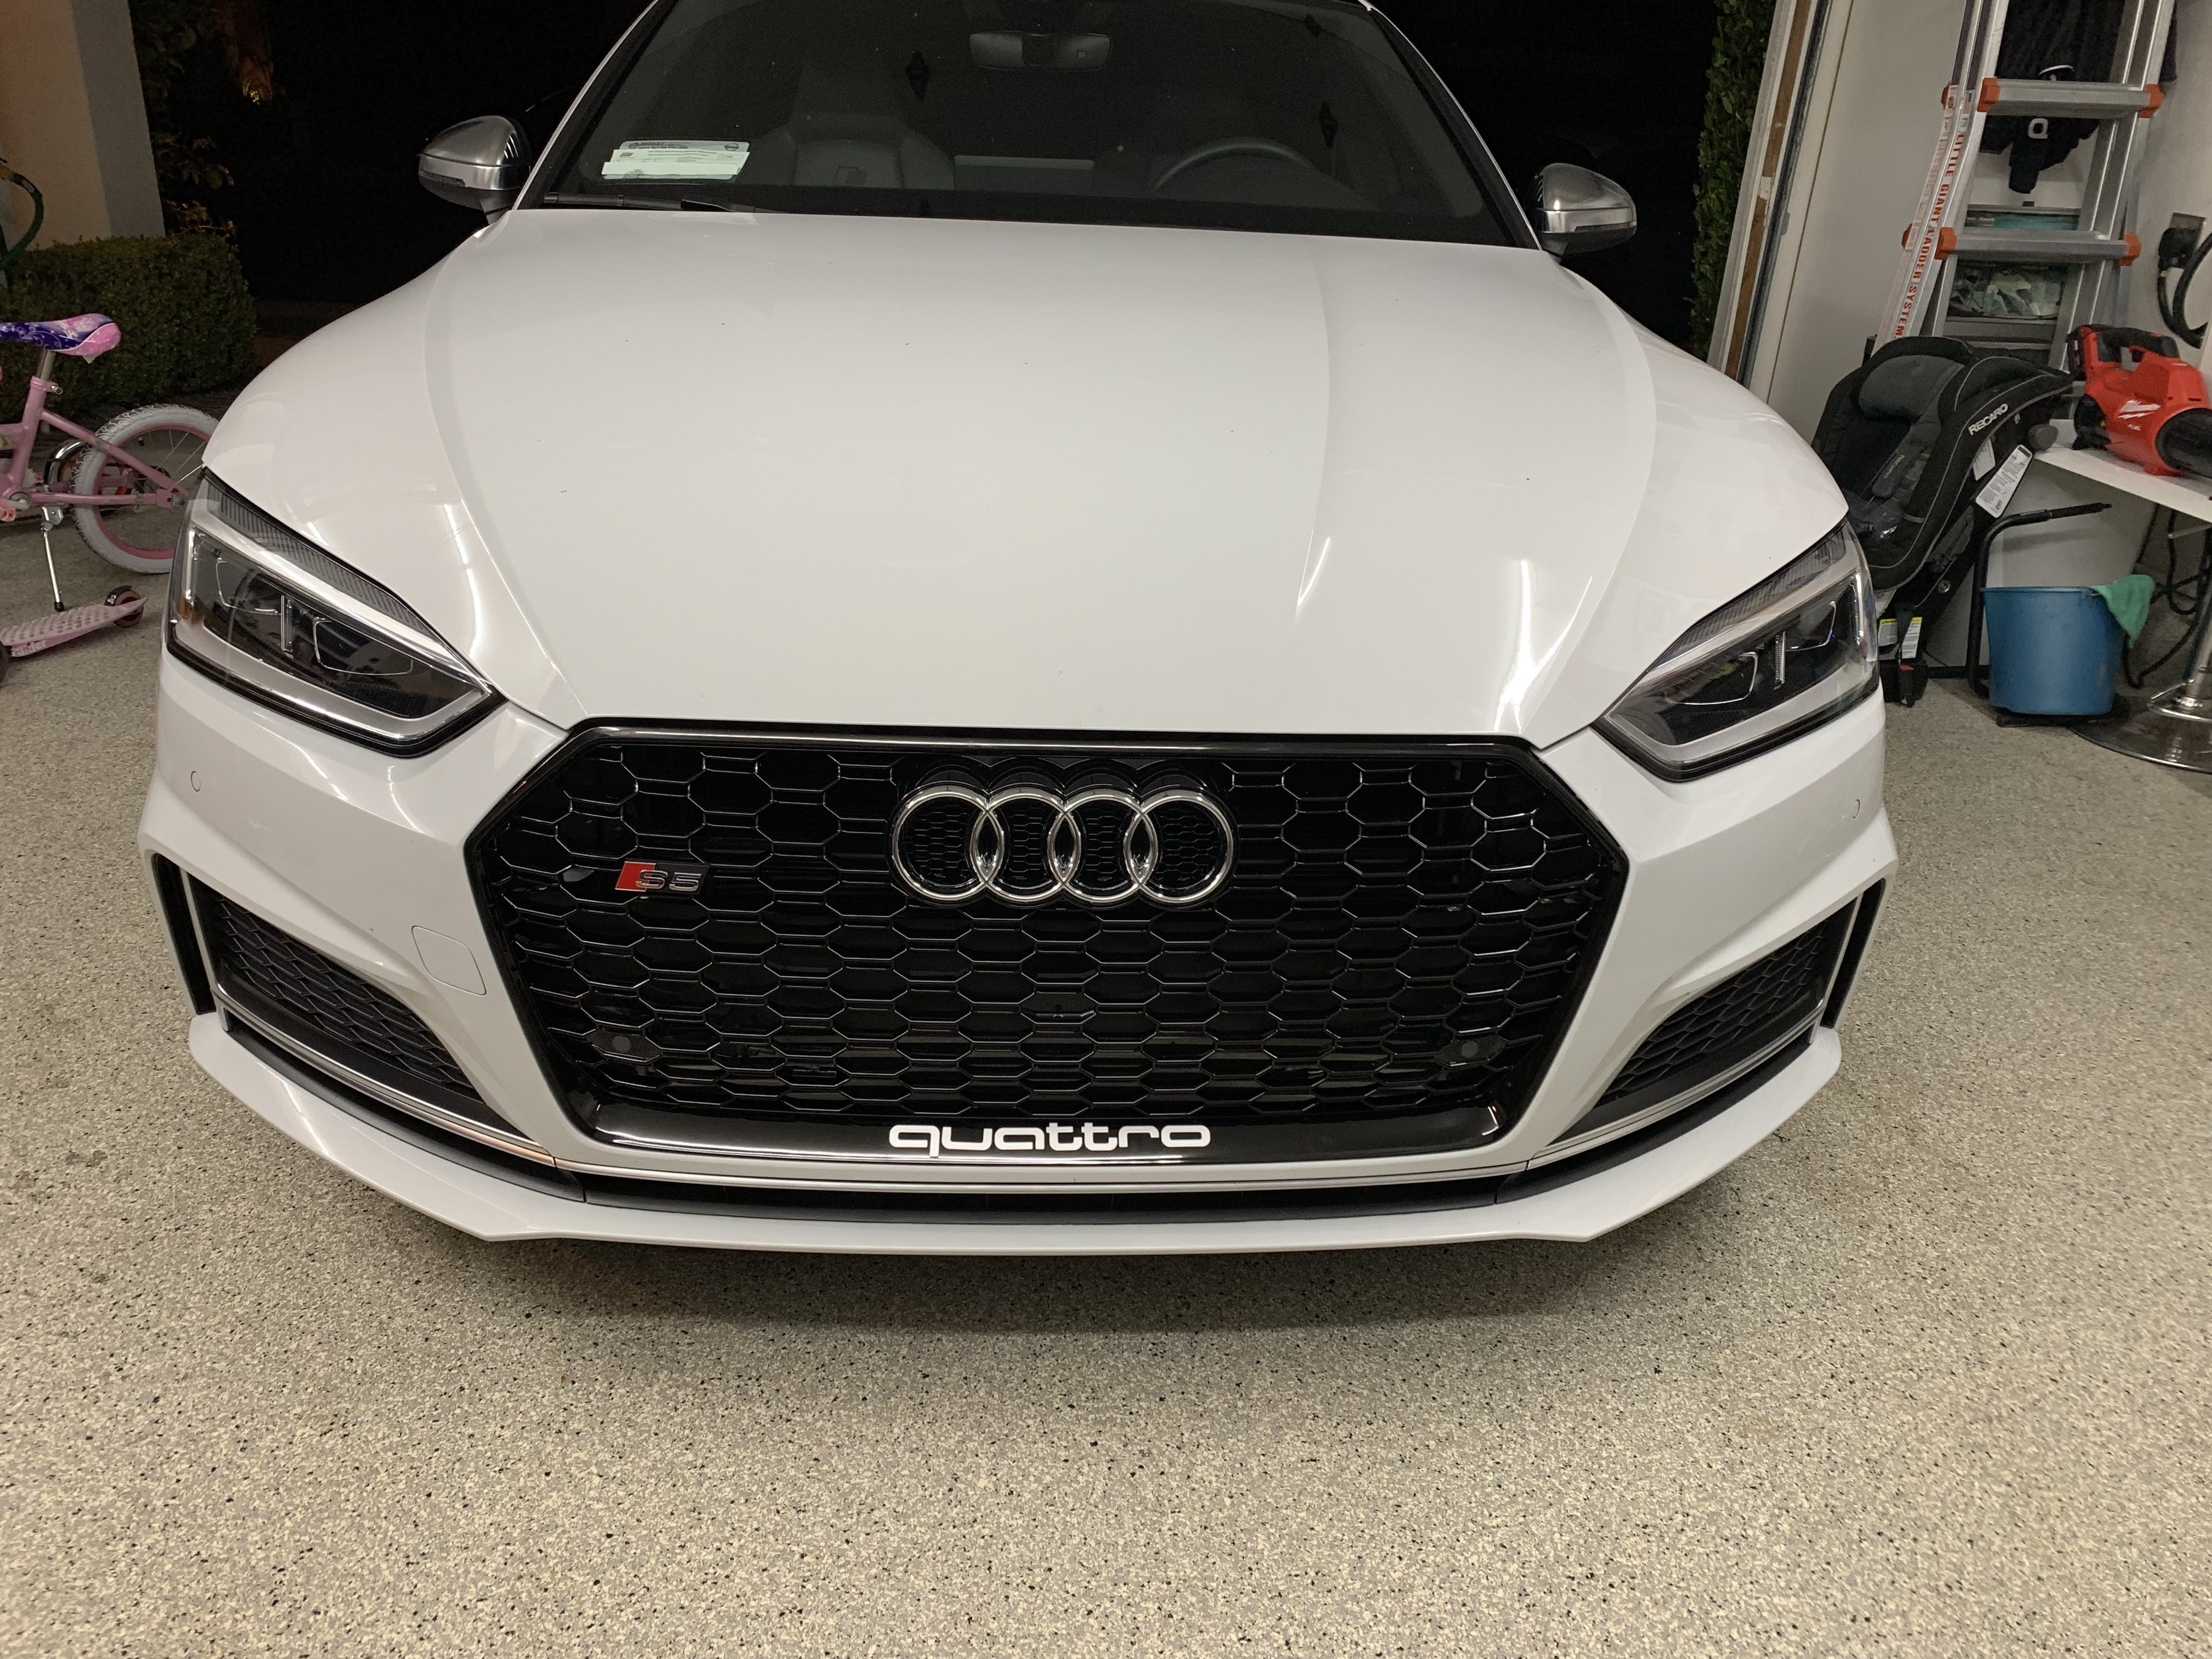 Rs5 B9 Grill On An S5 Is It An Easy Modification Audi A5 Forum Audi S5 Forum